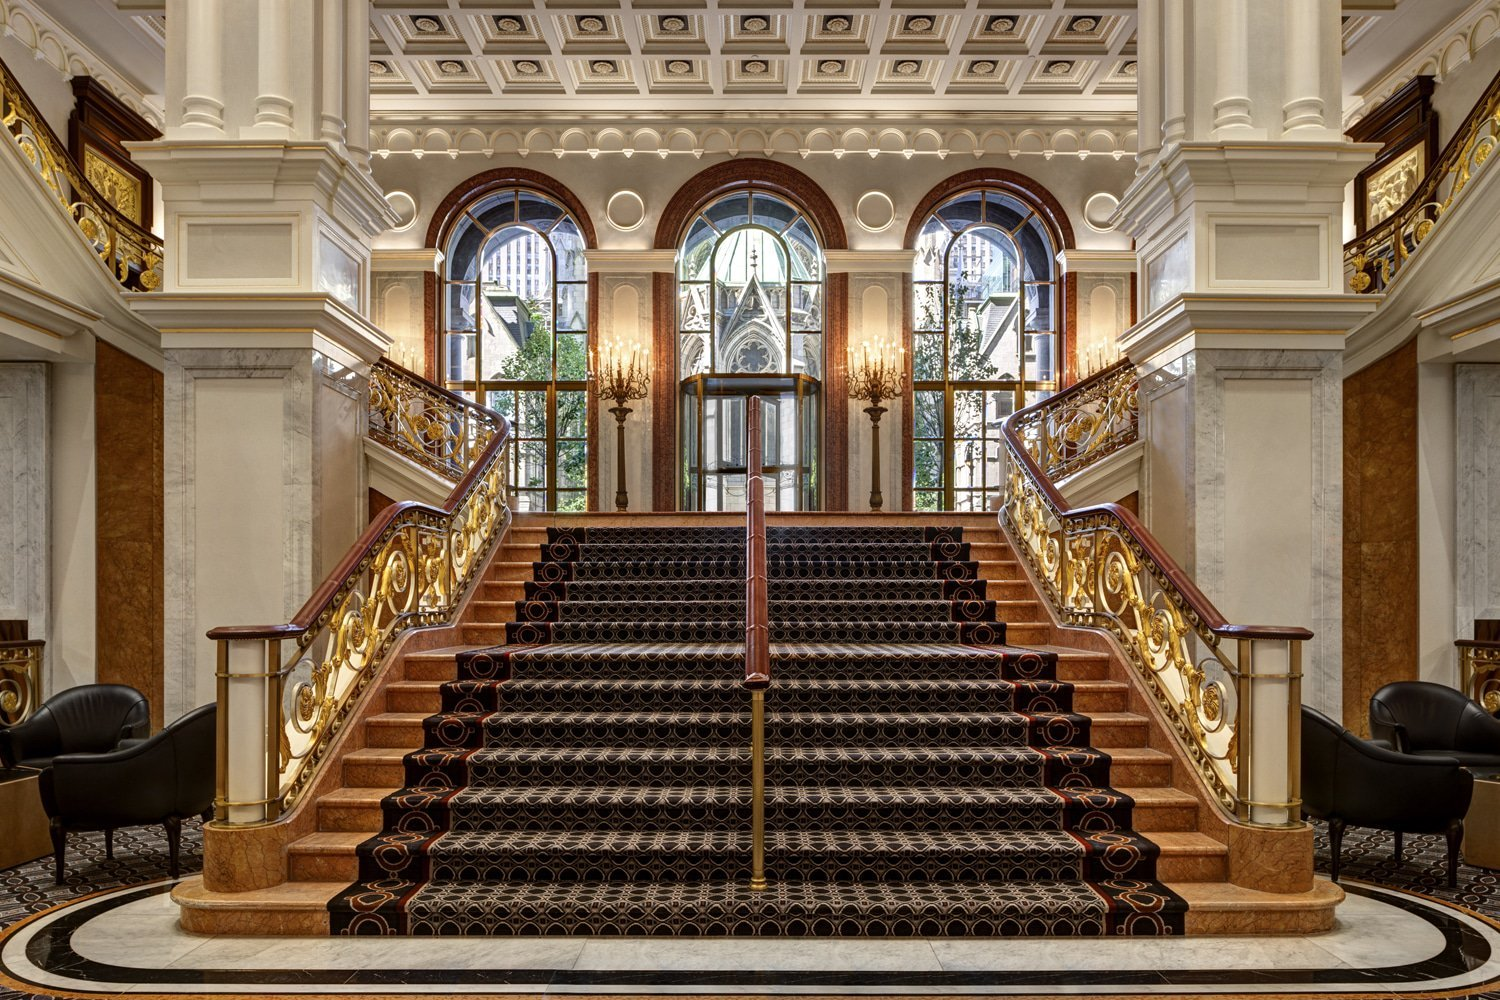 Staircase at Lotte New York Palace